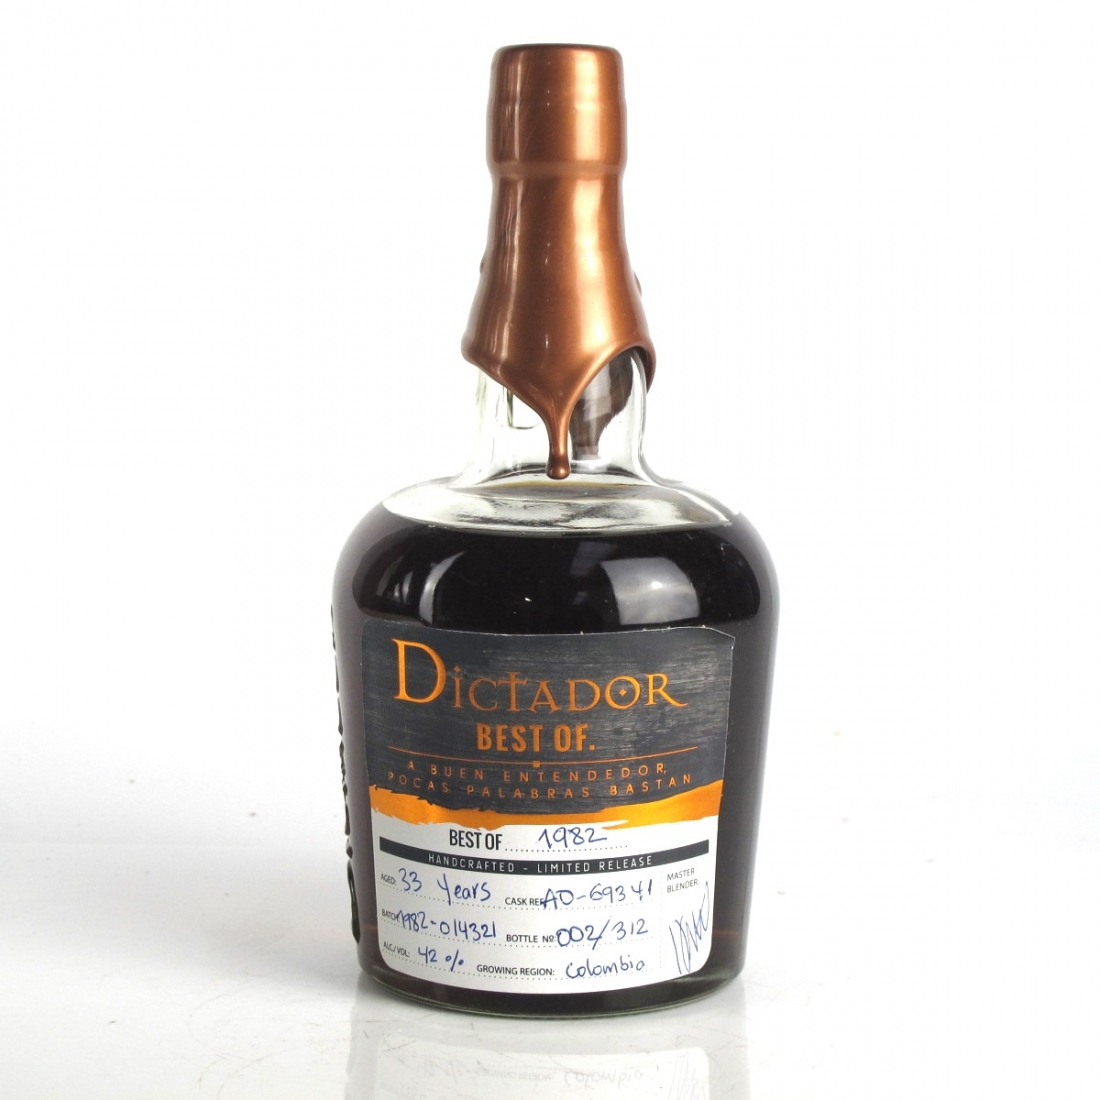 Dictador Best Of 1982 Limited Release 33 Year Old